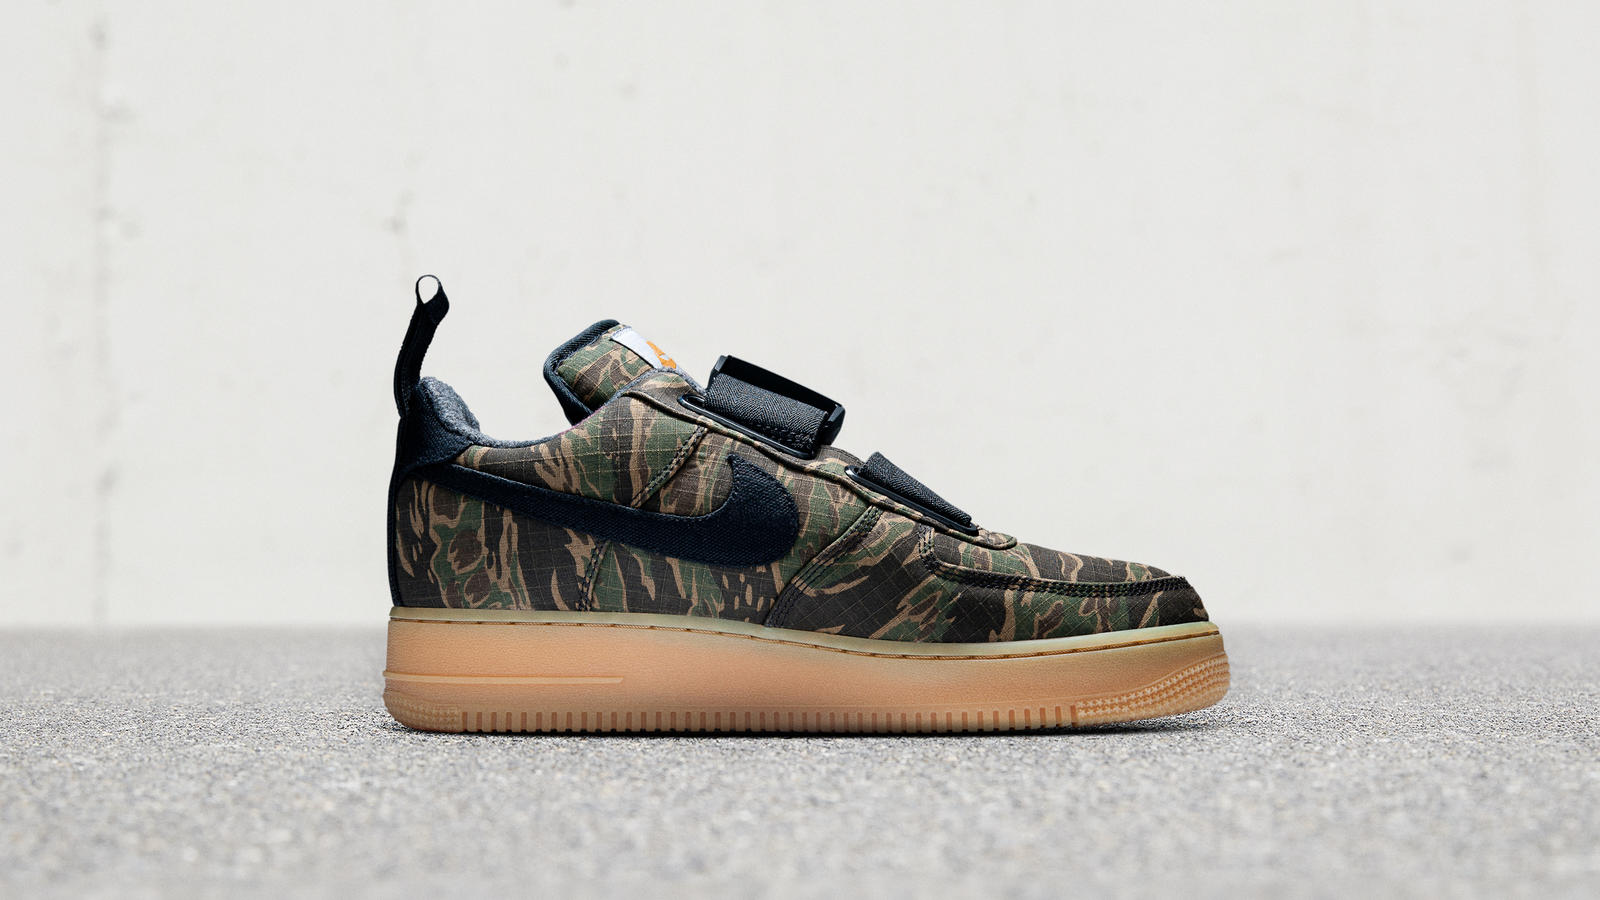 Featuredfootwear nsw nikexcarhartt 10.12.18 679 hd 1600